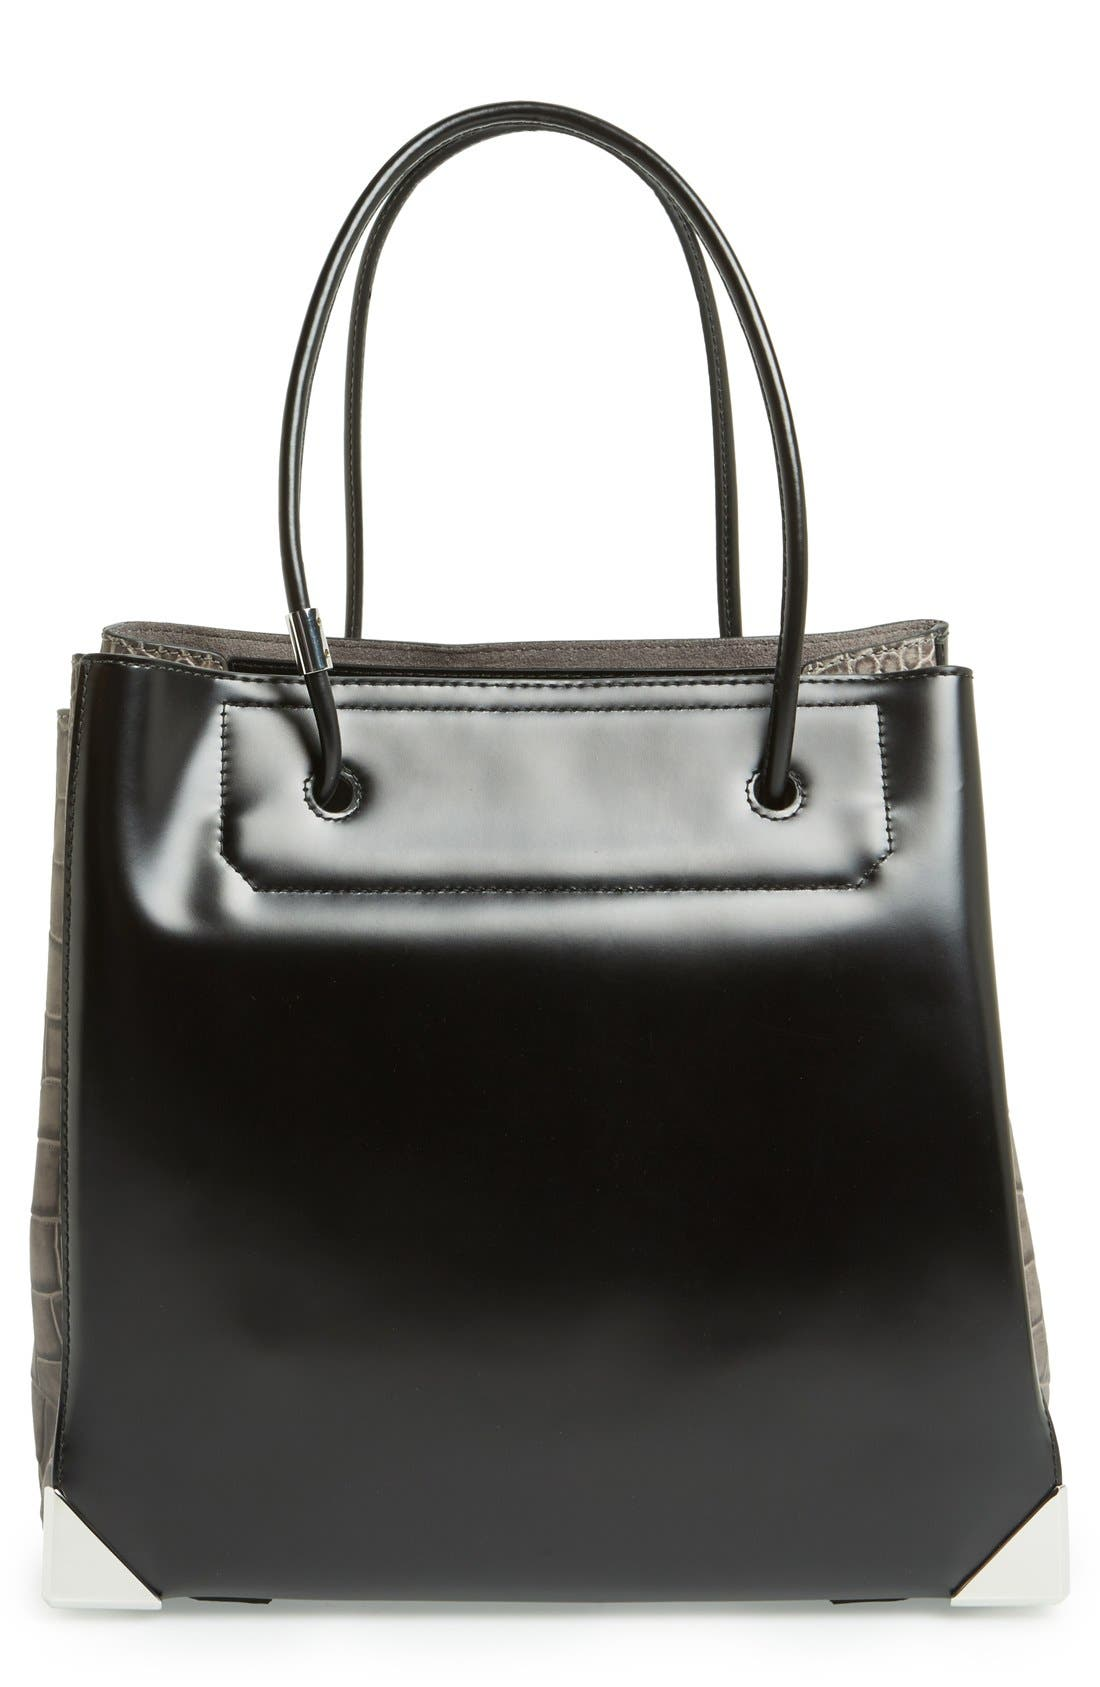 Alternate Image 1 Selected - Alexander Wang 'Large Prisma' Croc Embossed Leather Tote